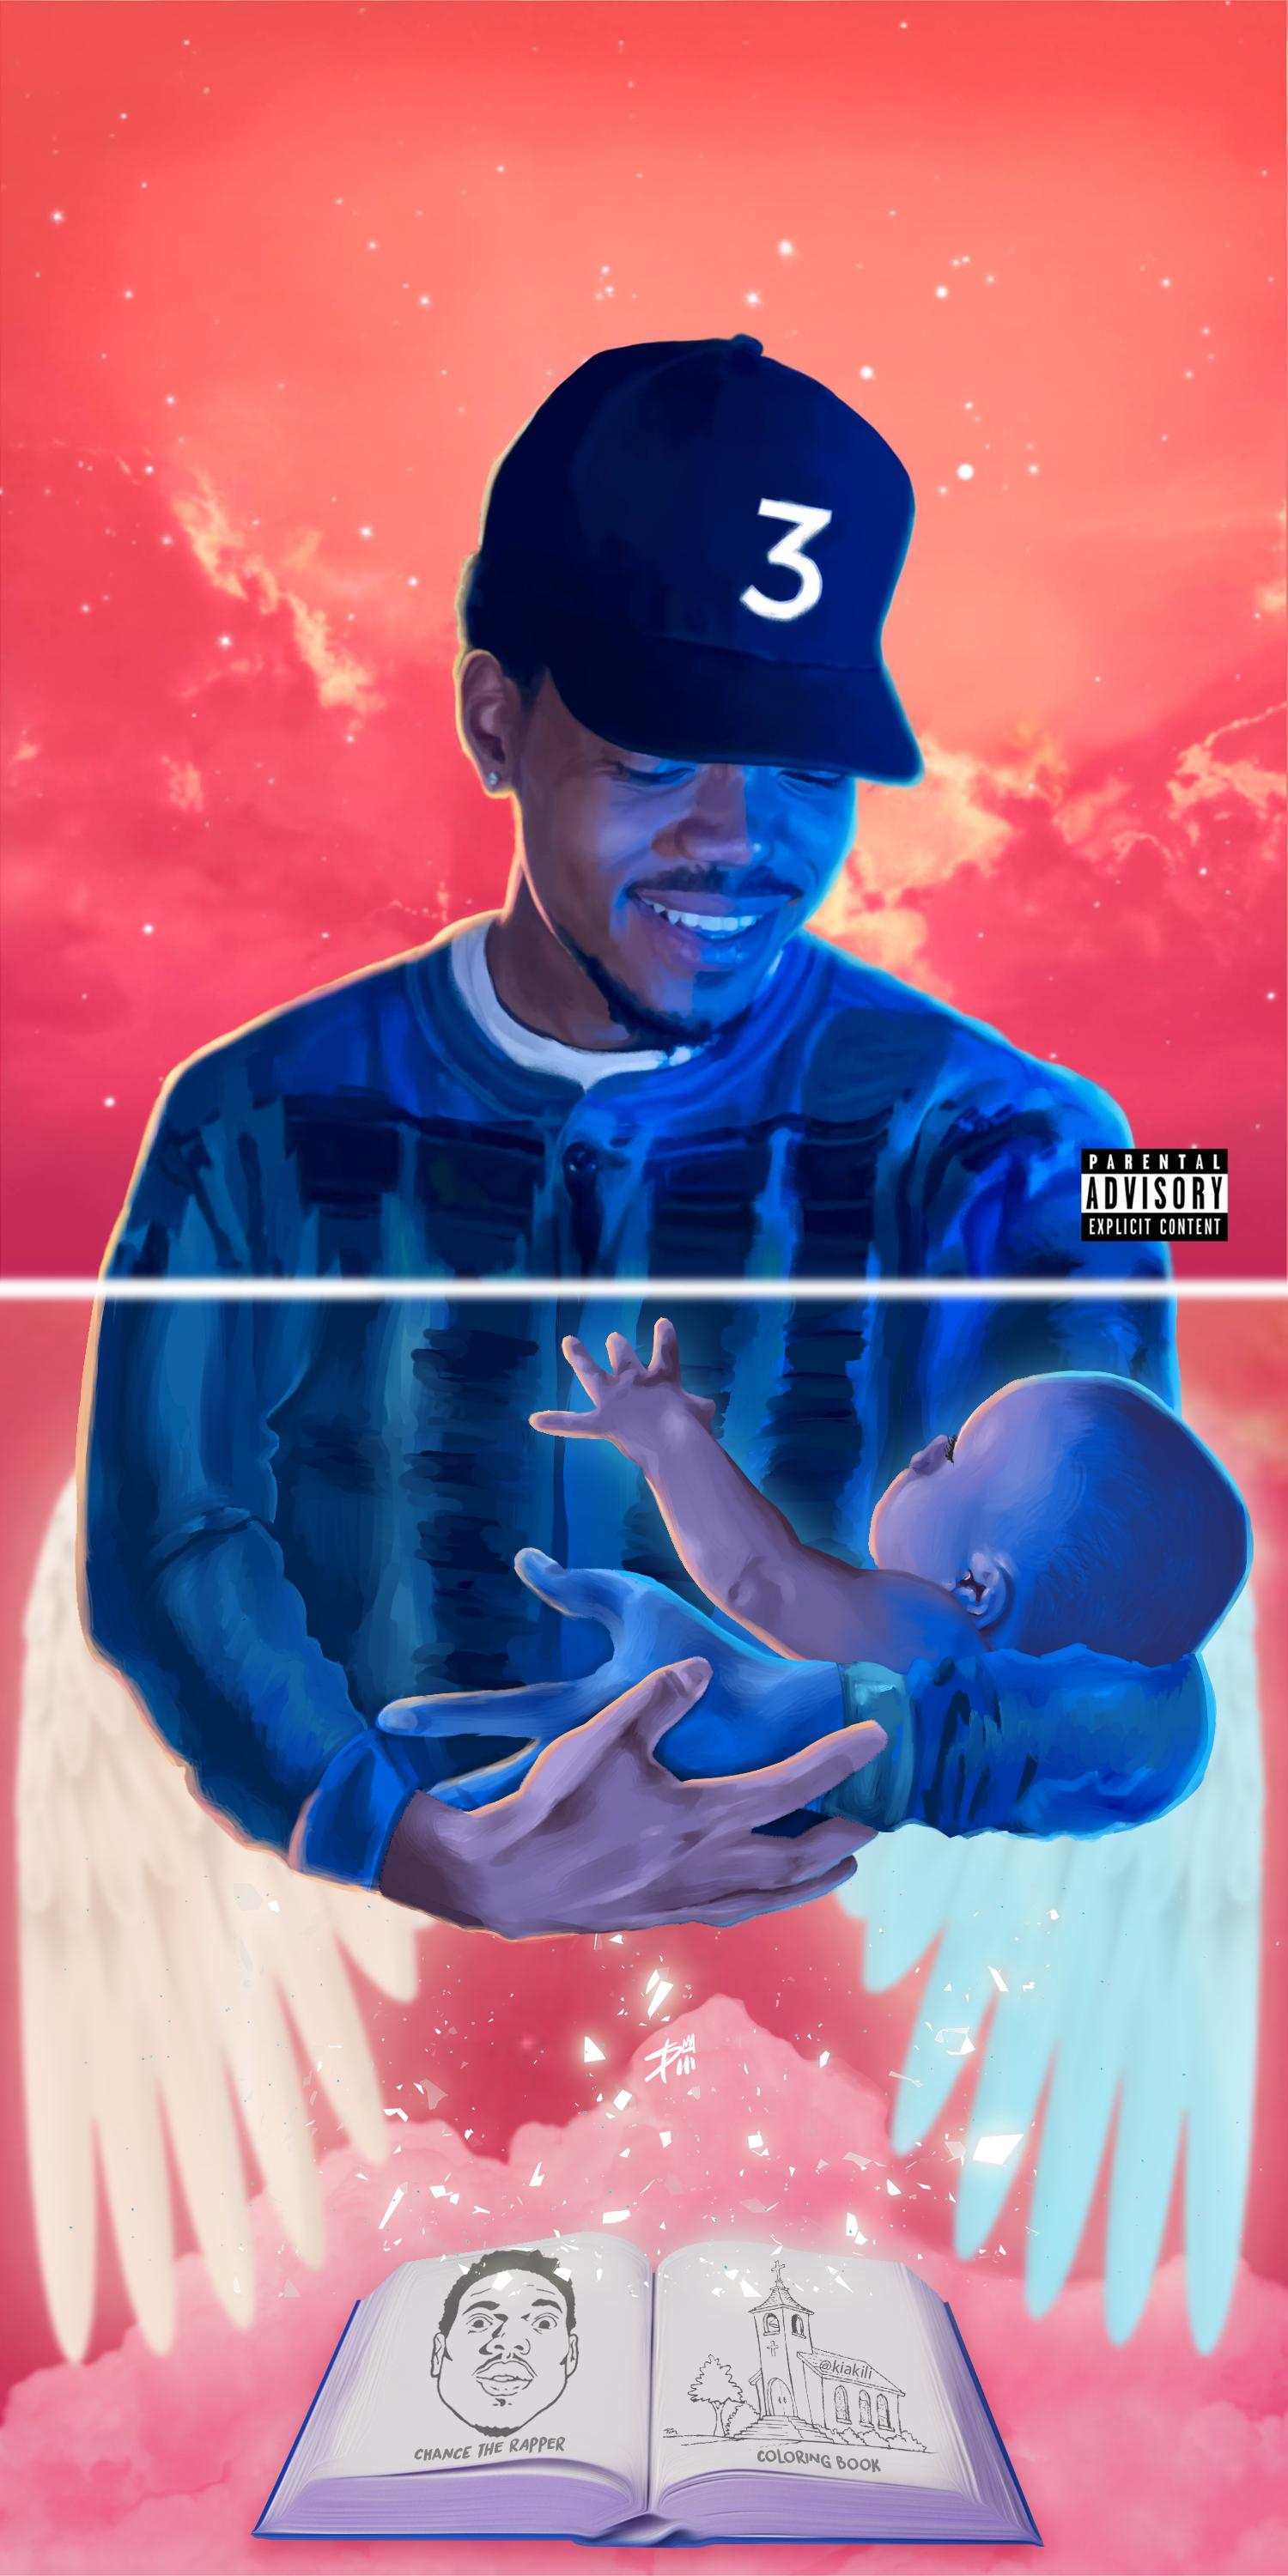 Download coloring book chance rapper mixtape -  Chance The Rapper Coloring Book Illustration By Brandon Breaux As With His Other Mixtapes Day And Acid Rap